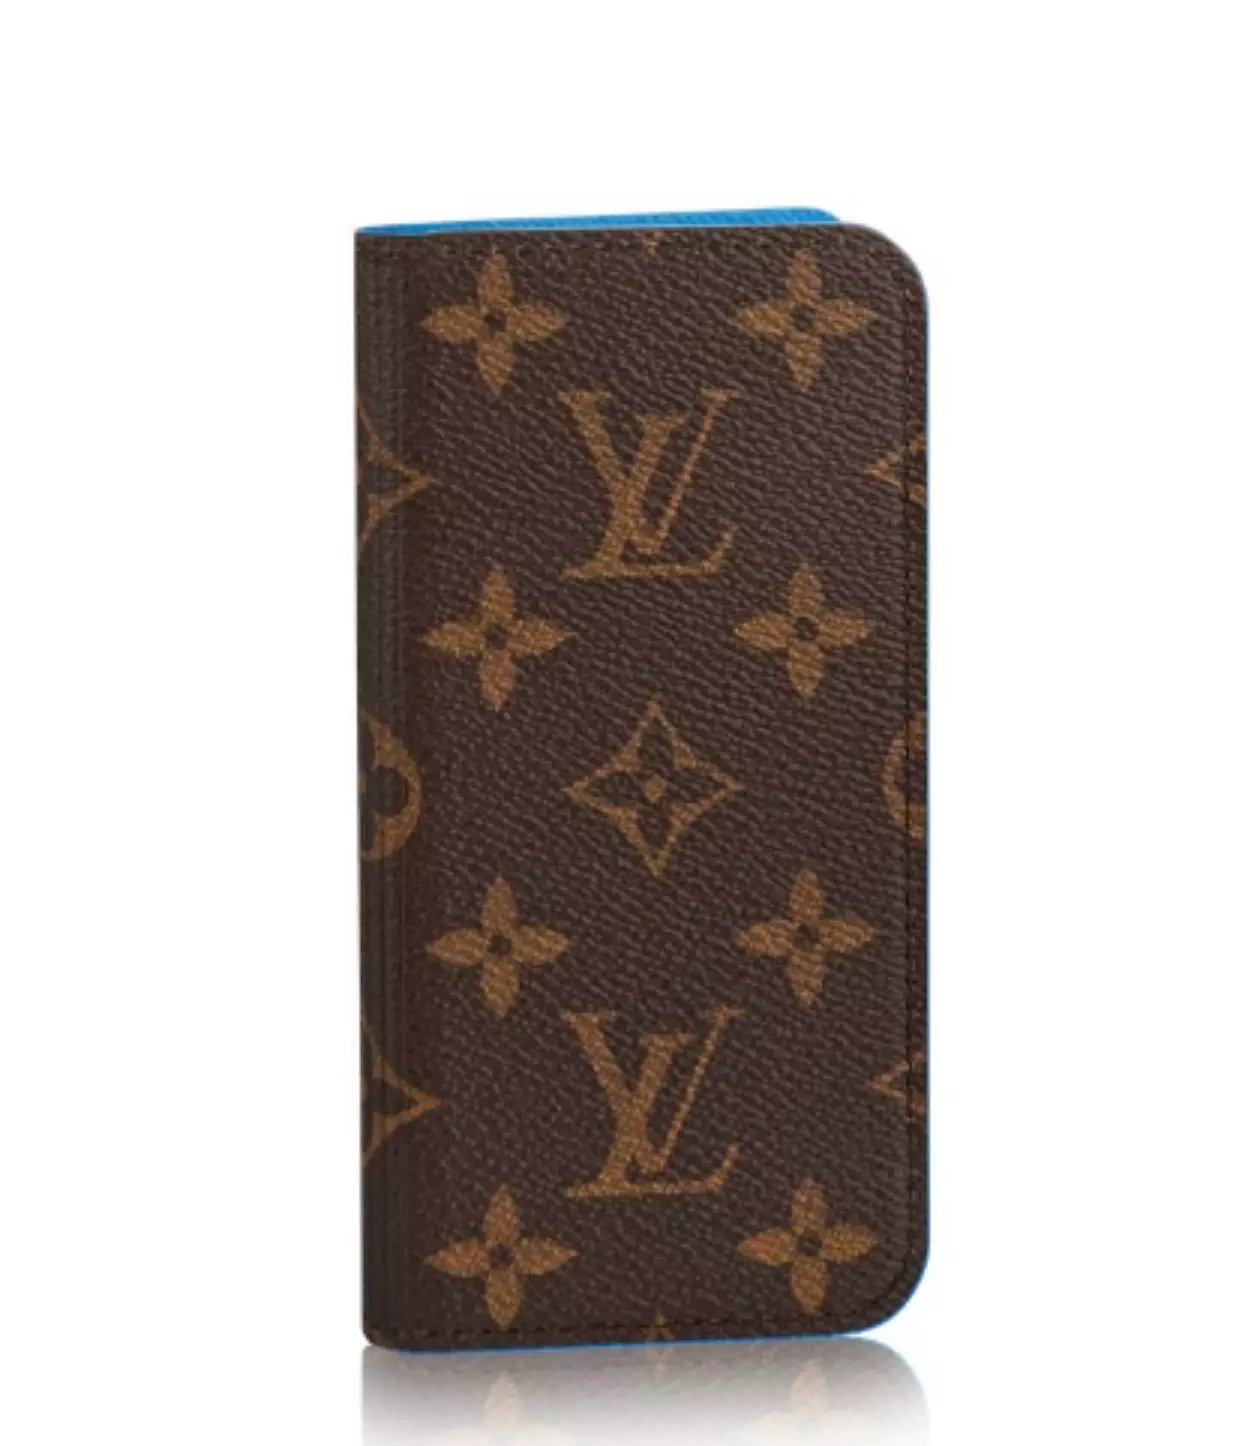 iphone 8 best covers hot iphone 8 cases Louis Vuitton iphone 8 case what is a mophie juice pack cover phone iphone covers and cases india mobile covers coveron phone cases online cell phone cases